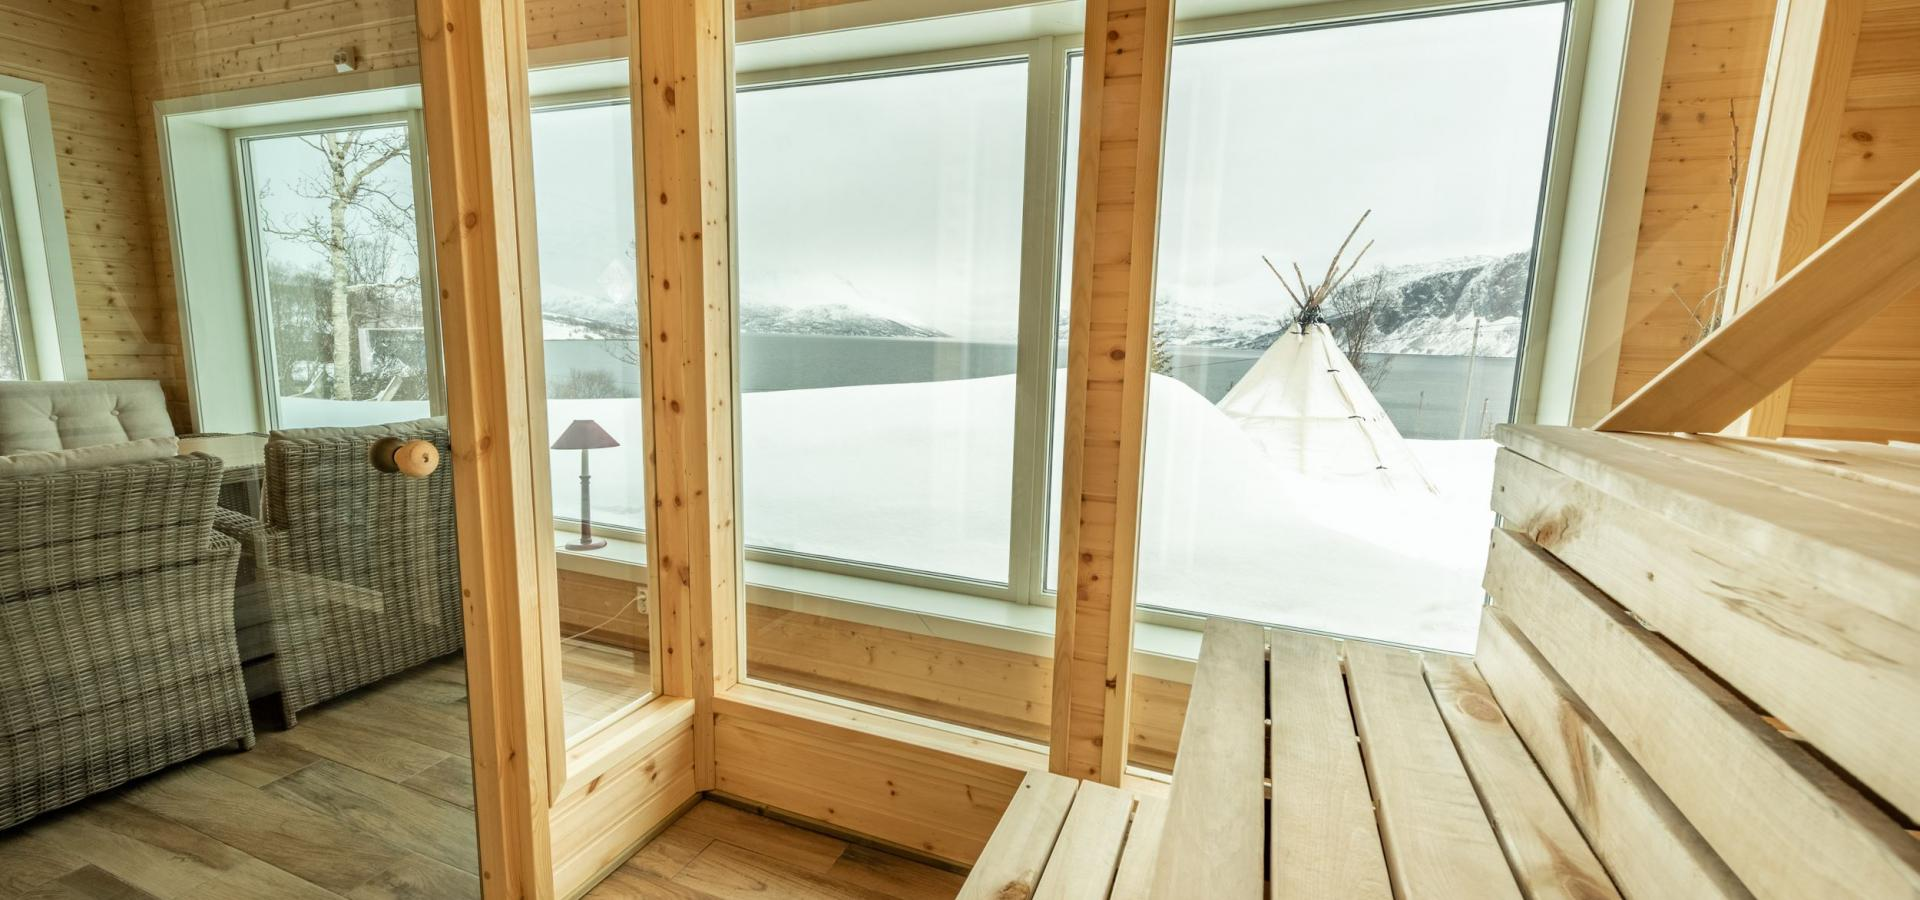 The sauna with a view.